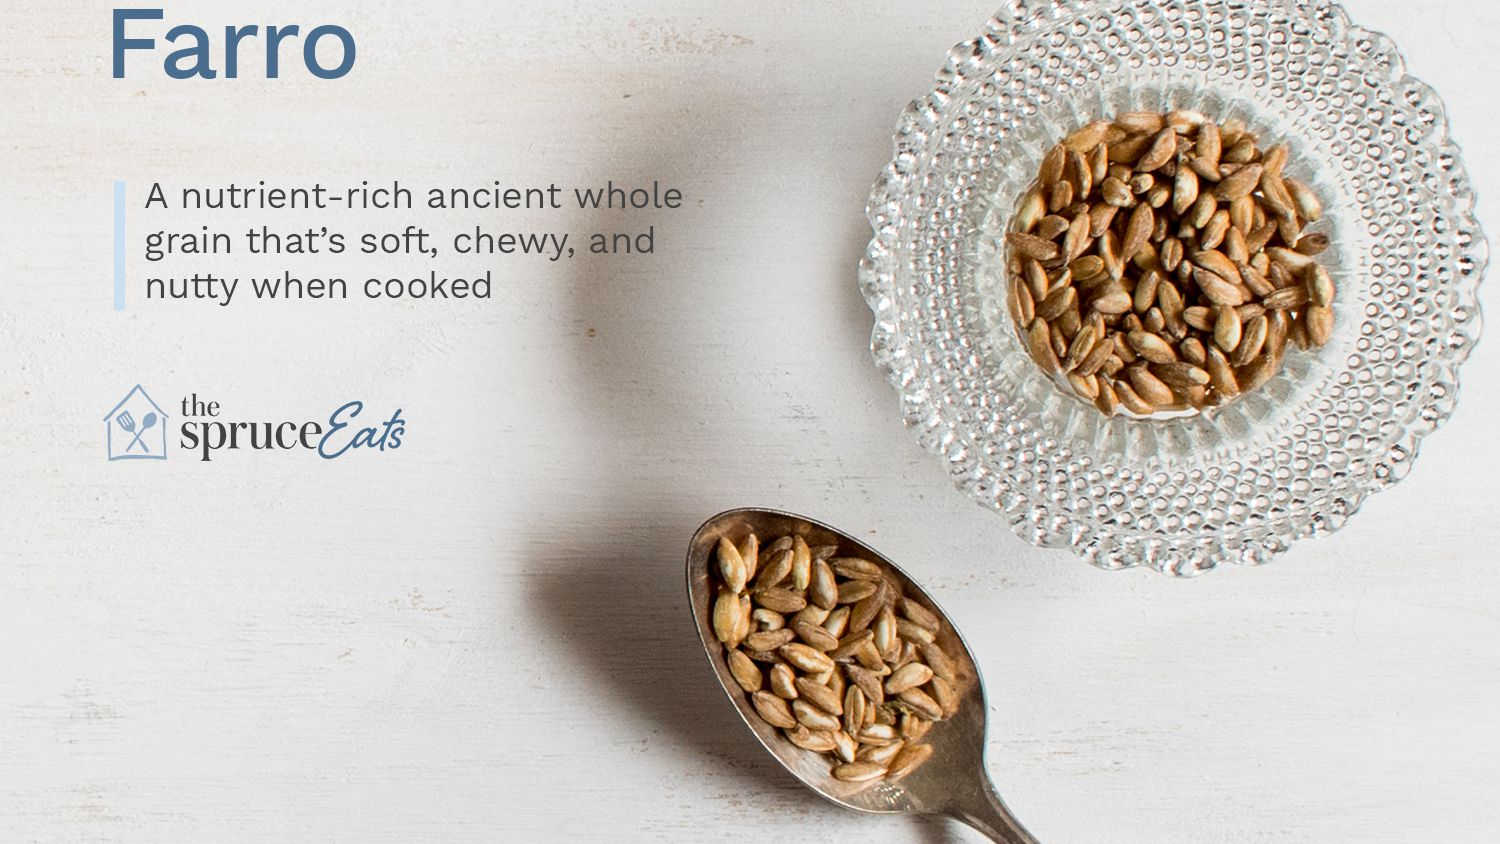 What Is Farro and How Is It Used?